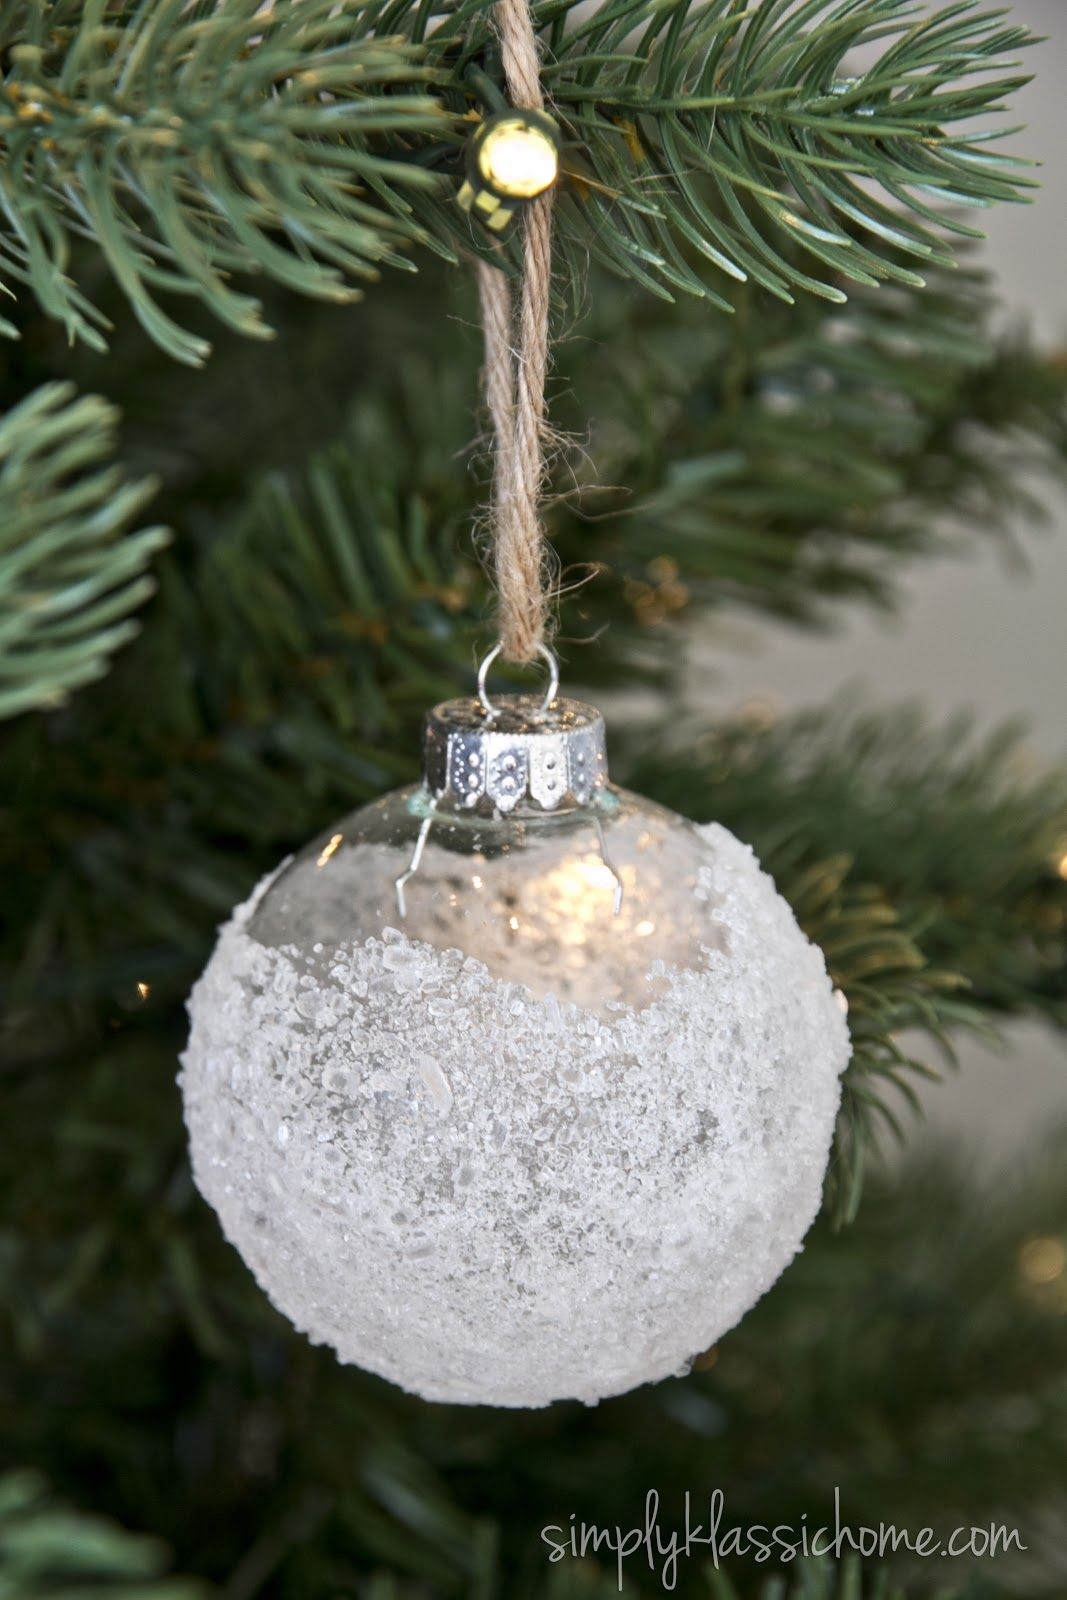 Simply Klassic Home: Ten Handmade Ornaments in Under An Hour